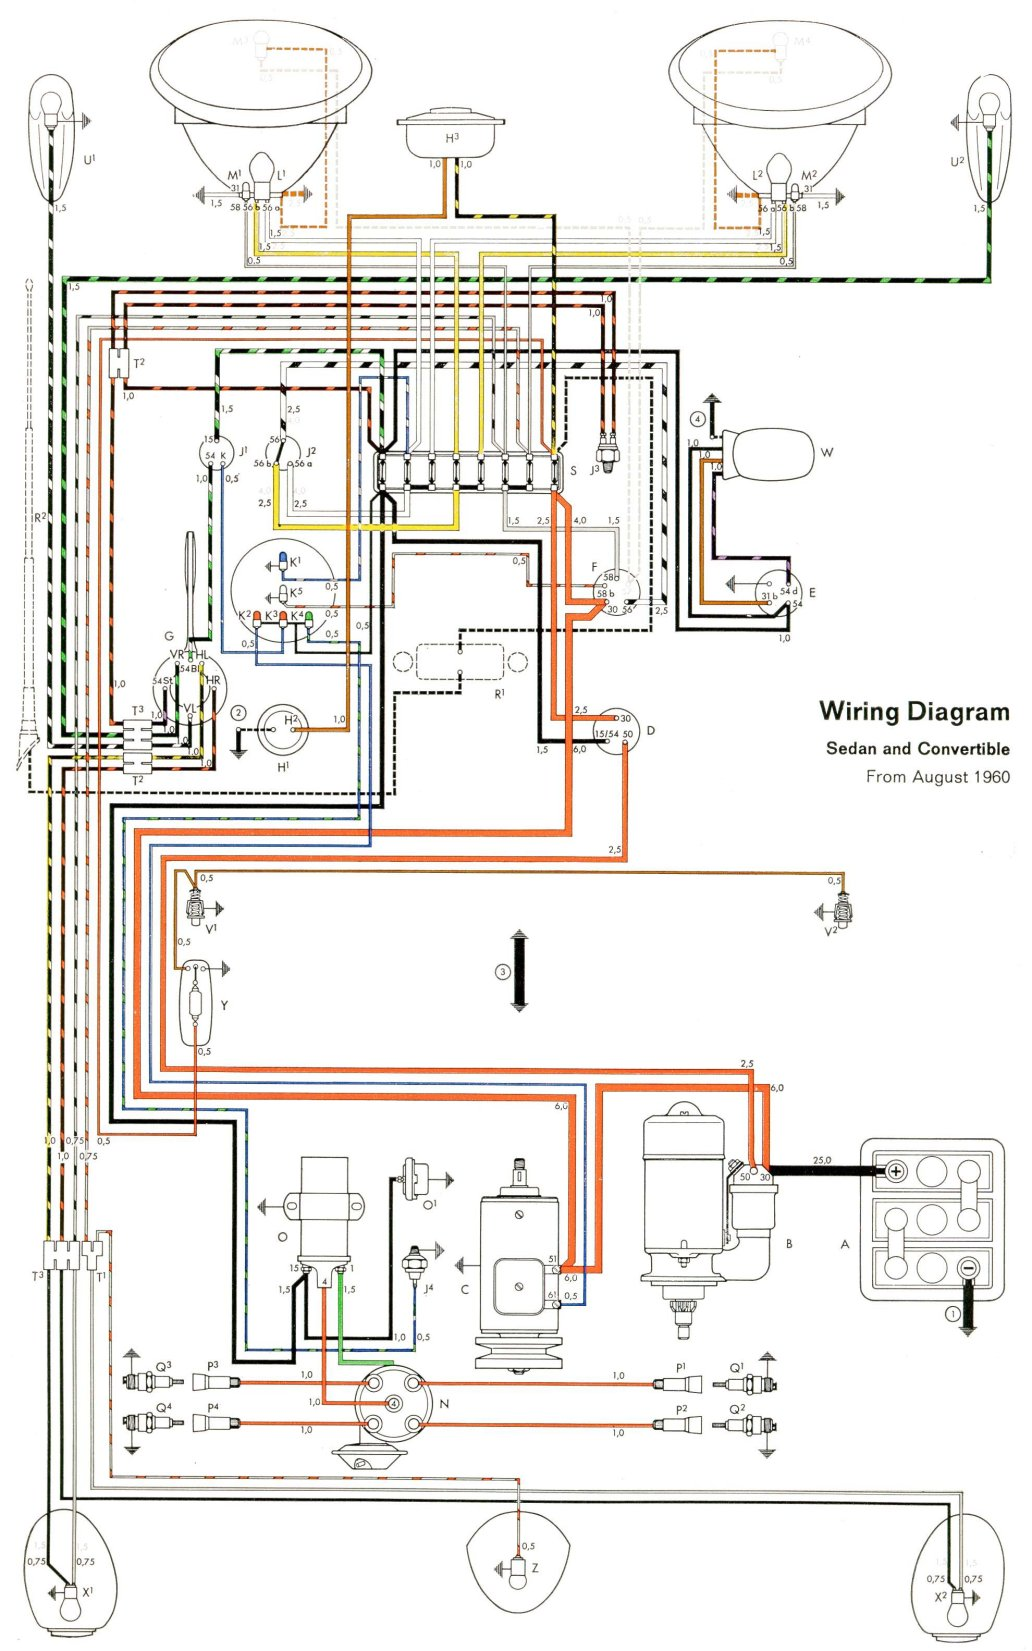 bug_61 thesamba com type 1 wiring diagrams 1978 vw super beetle wiring diagram at soozxer.org